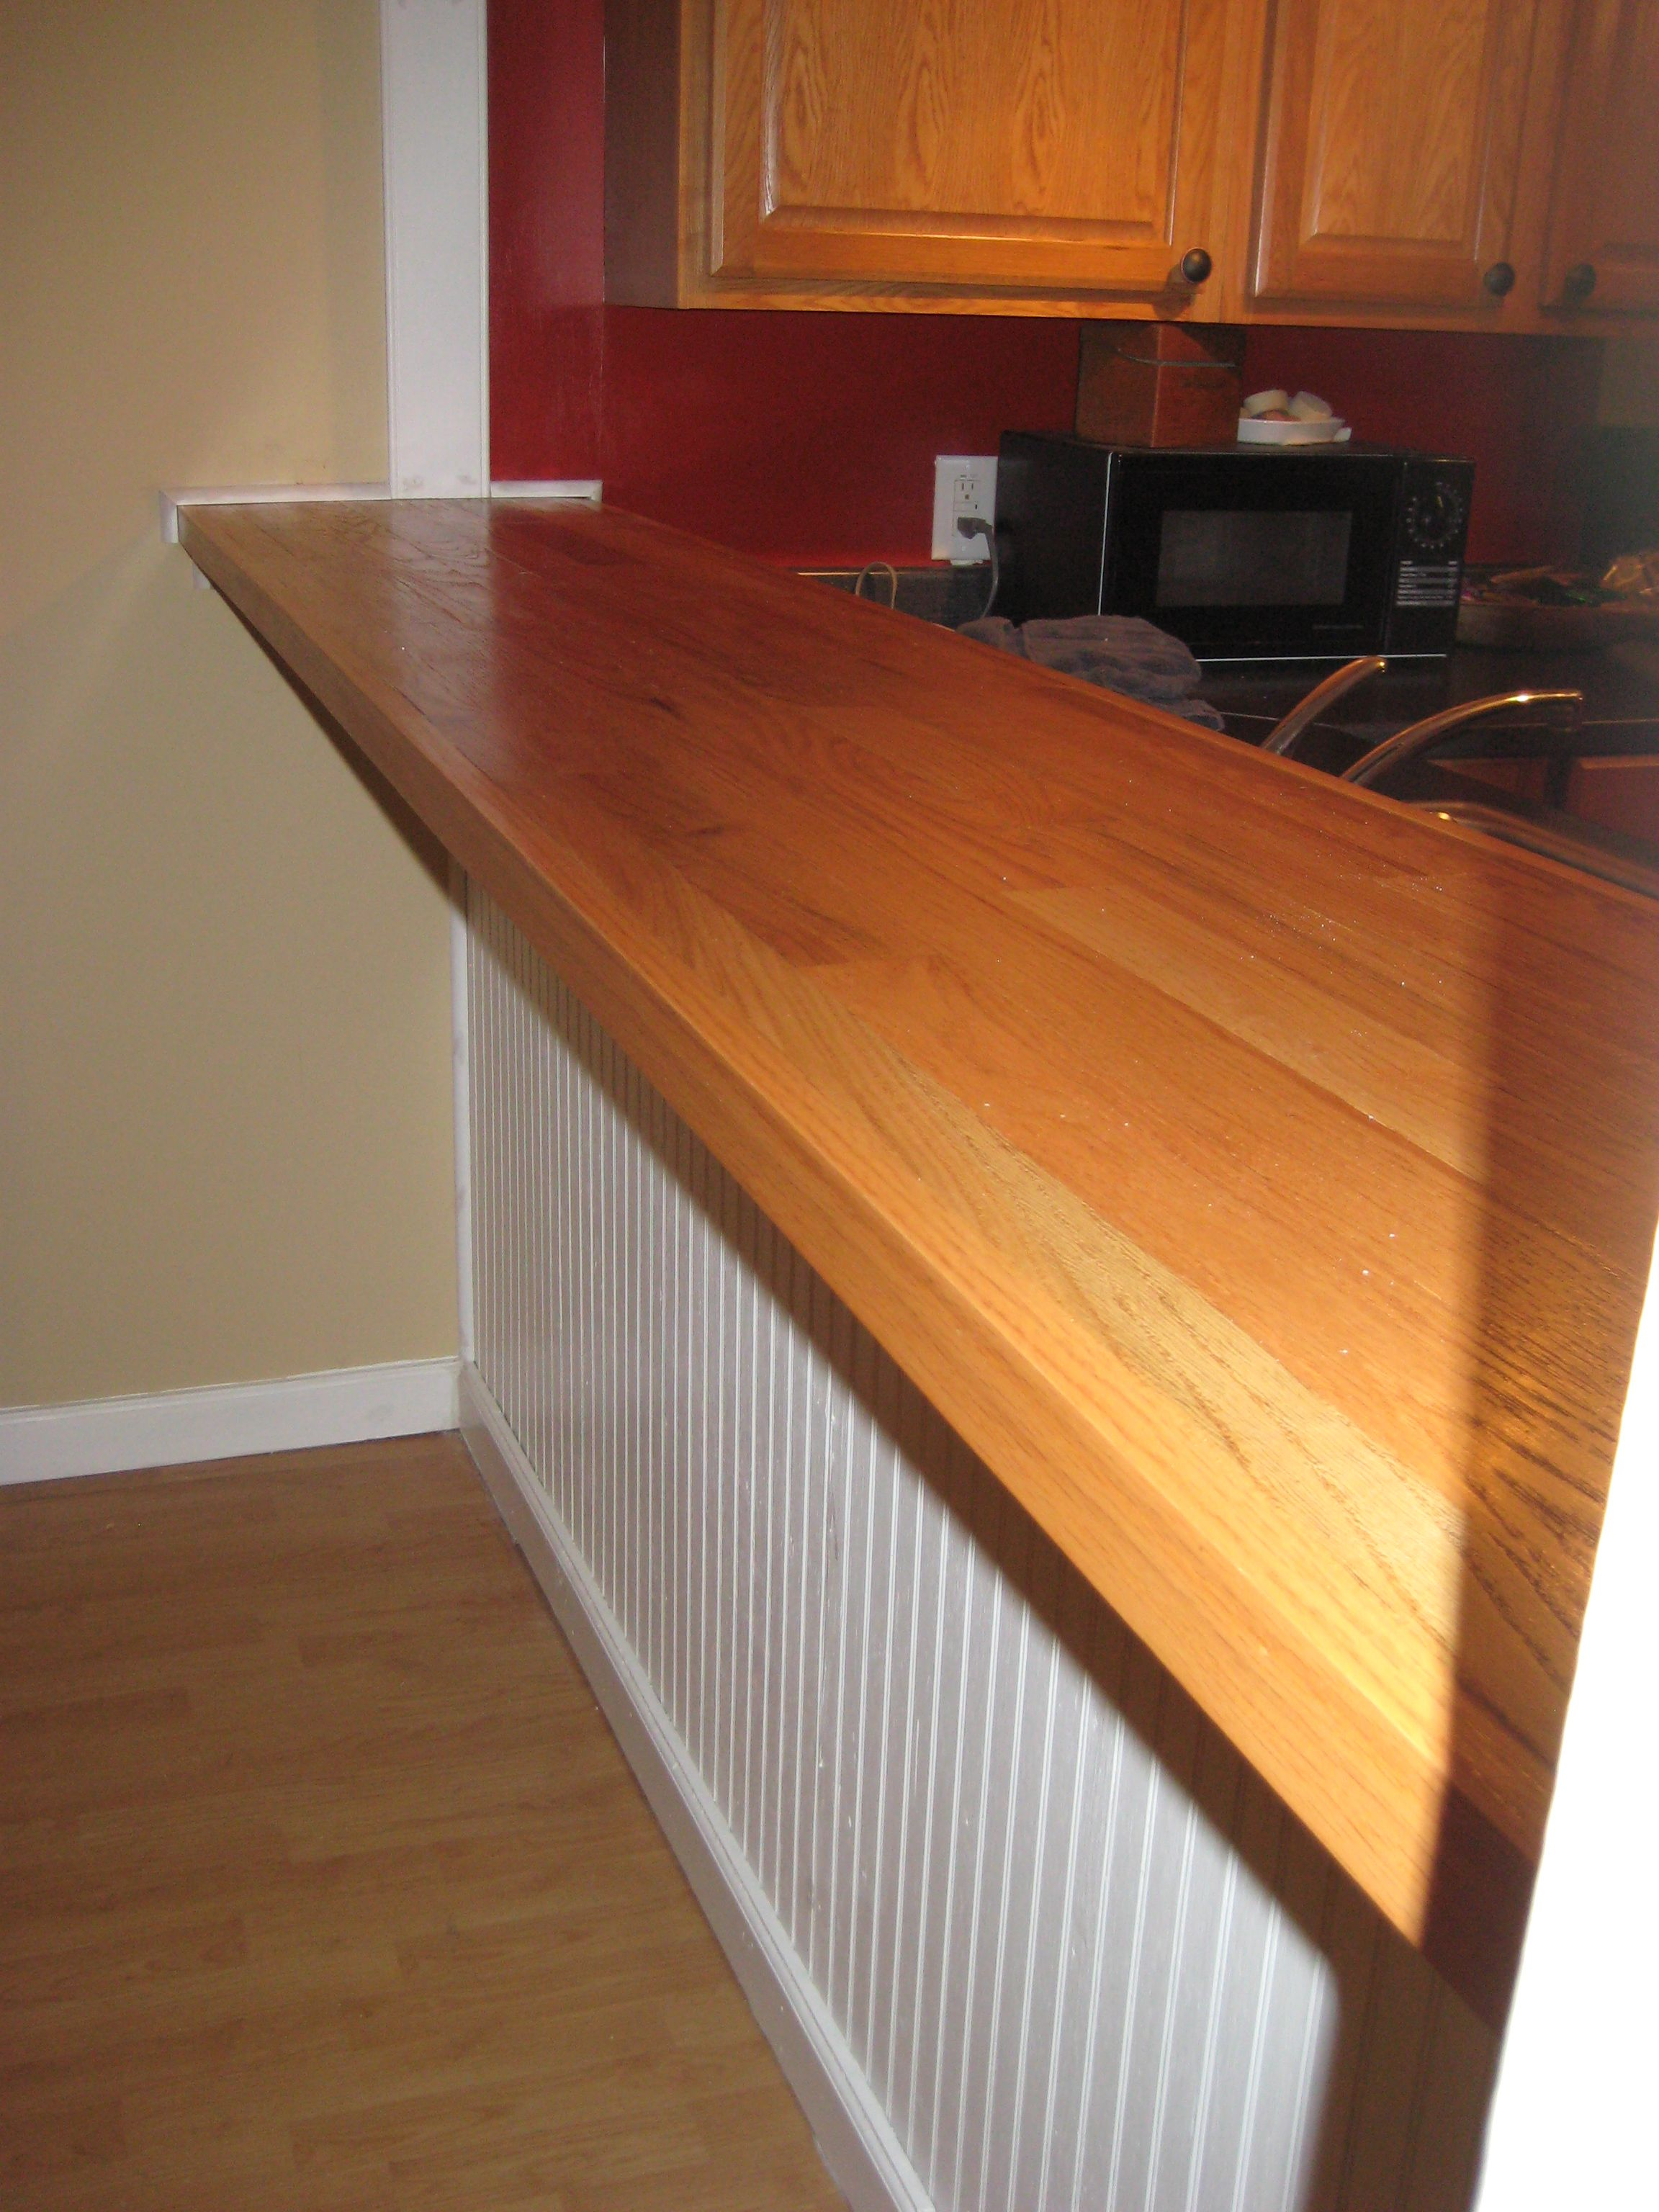 Bar Top Ideas Basement Interesting Diy Bar Top Made With Plywood Oak Hardwood Flooring Nail Gun Design Decoration